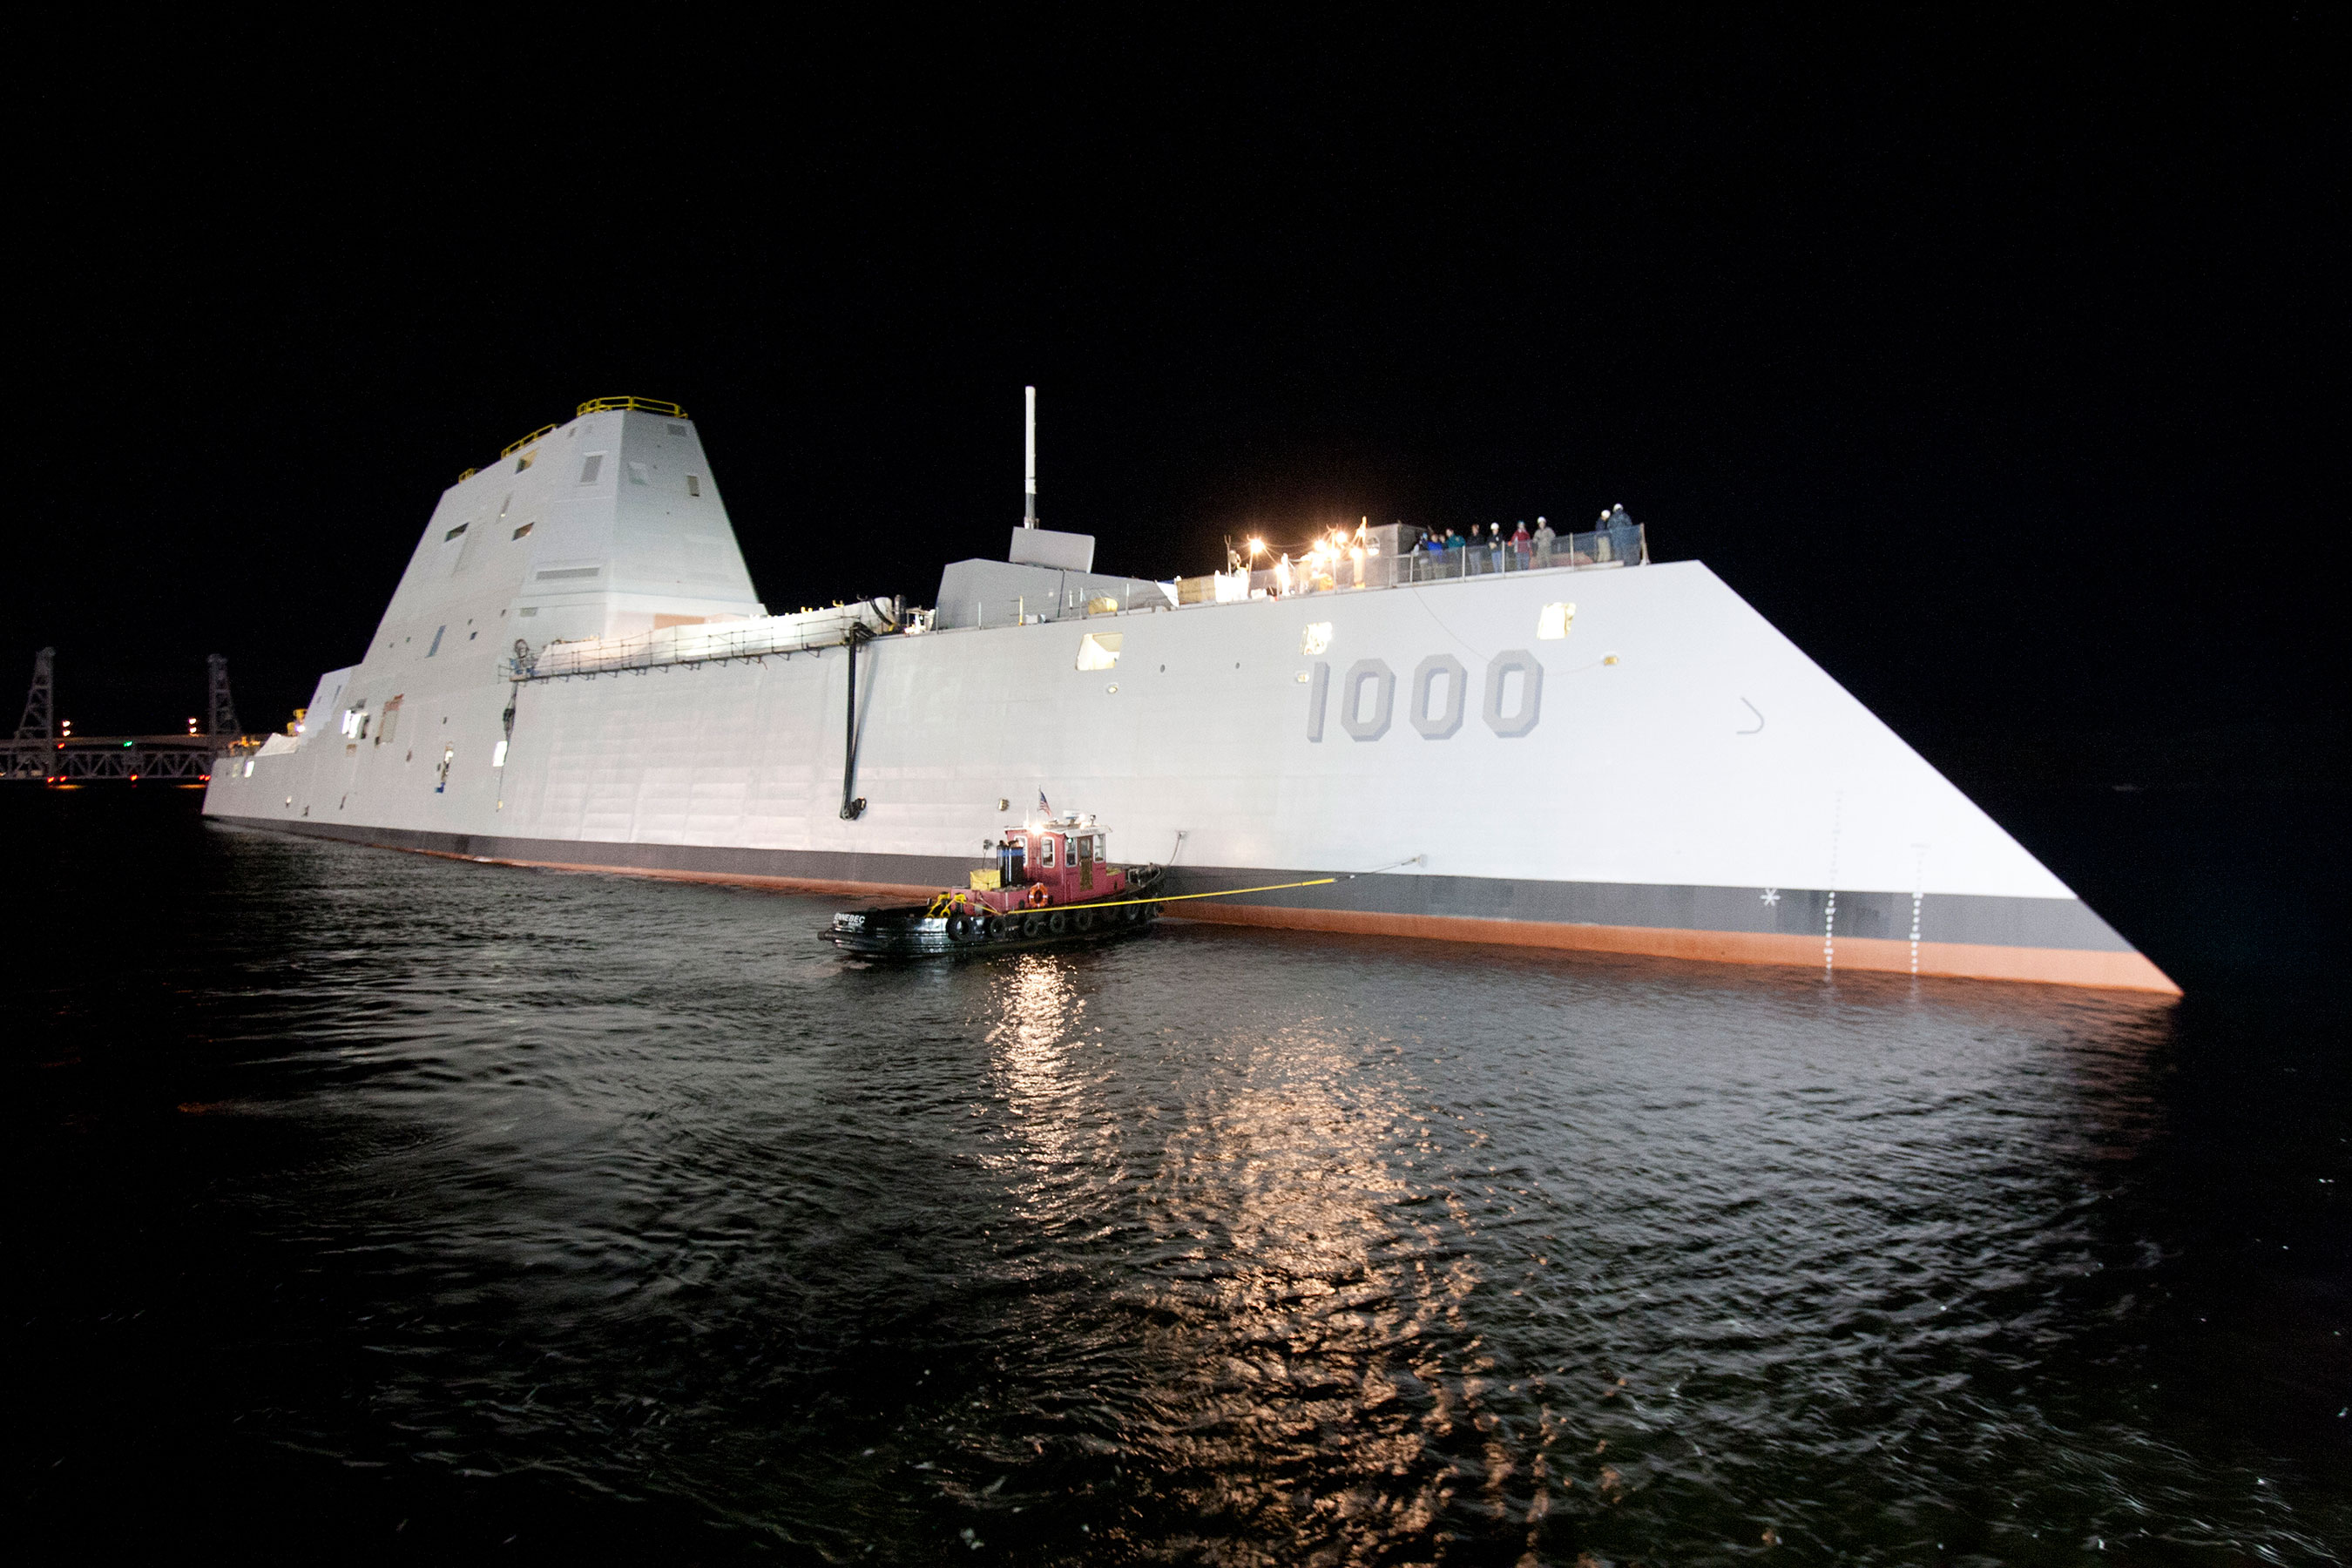 Raytheon is privileged to partner with the Navy and a broad team of experts across industry, working on DDG 1000, the Zumwalt-class destroyer.